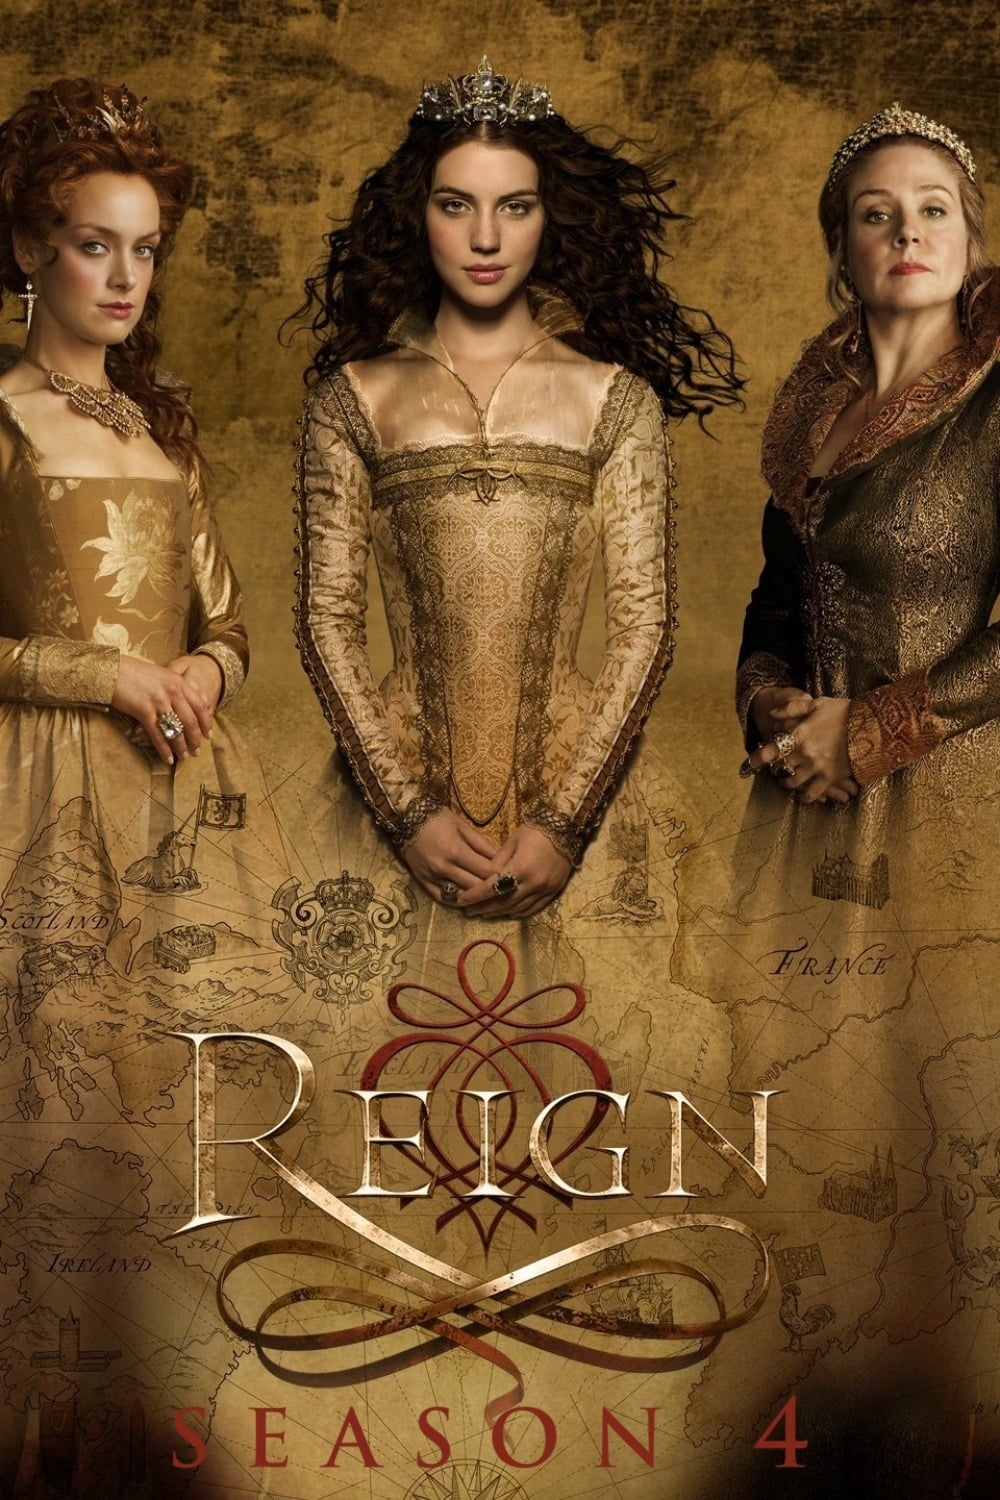 reign season 4 full episode putlocker 4k putlocker 4k